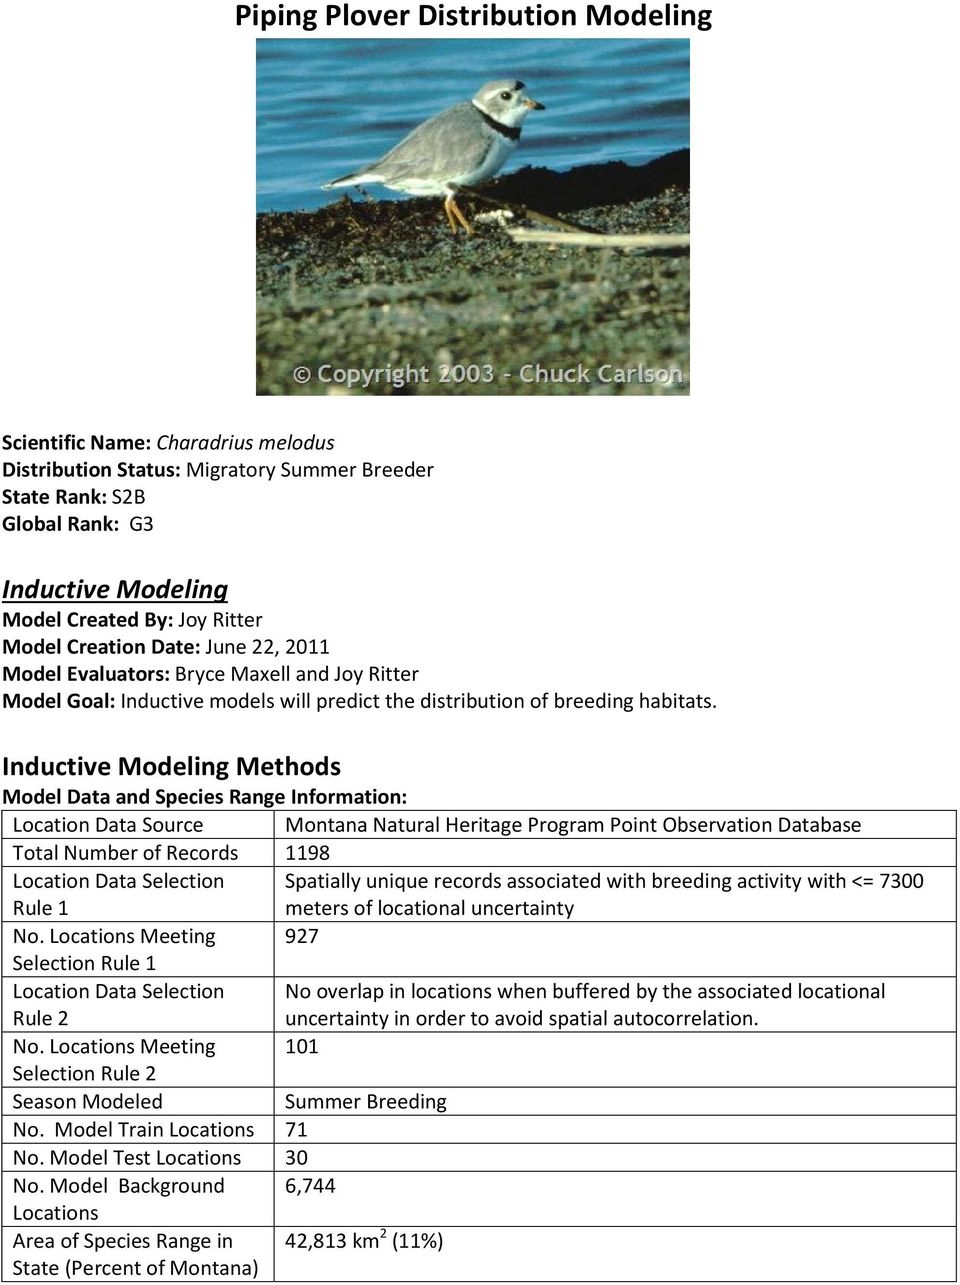 Inductive Modeling Methods Model Data and Species Range Information: Location Data Source Montana Natural Heritage Program Point Observation Database Total Number of Records 1198 Location Data